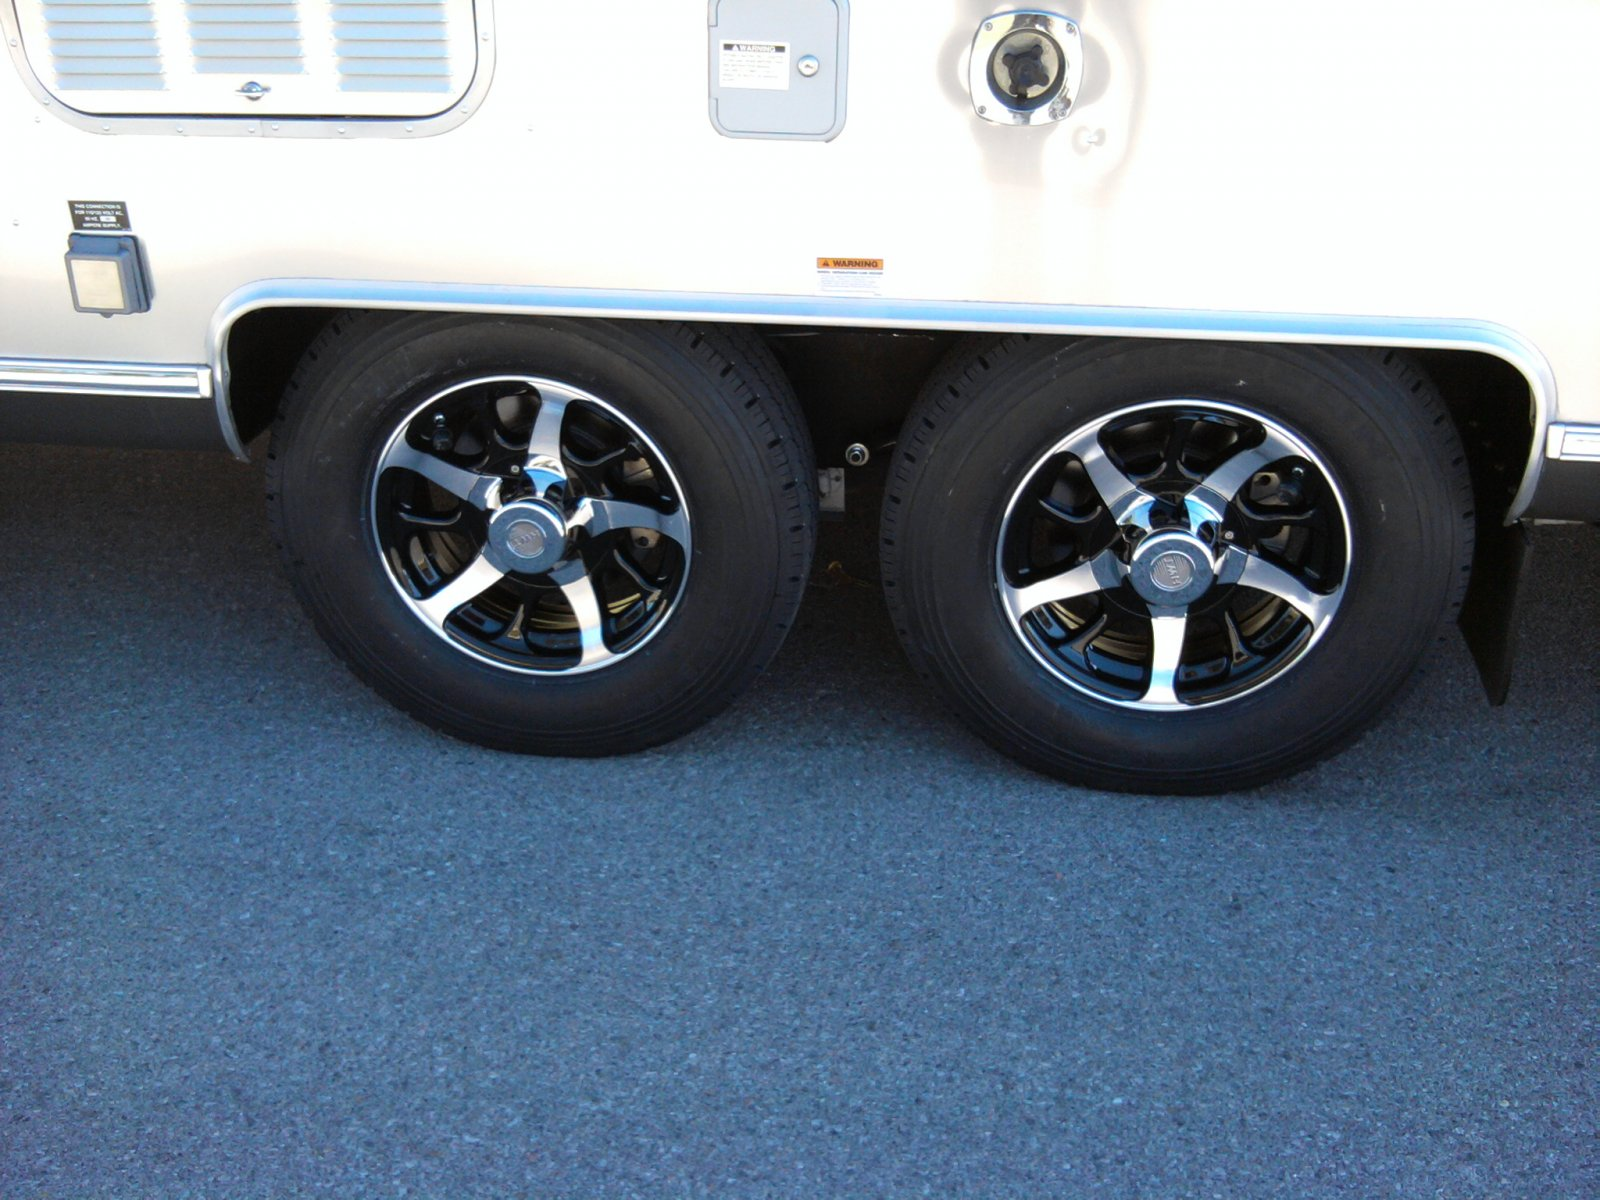 Click image for larger version  Name:Wheels 1.jpg Views:228 Size:285.8 KB ID:114522